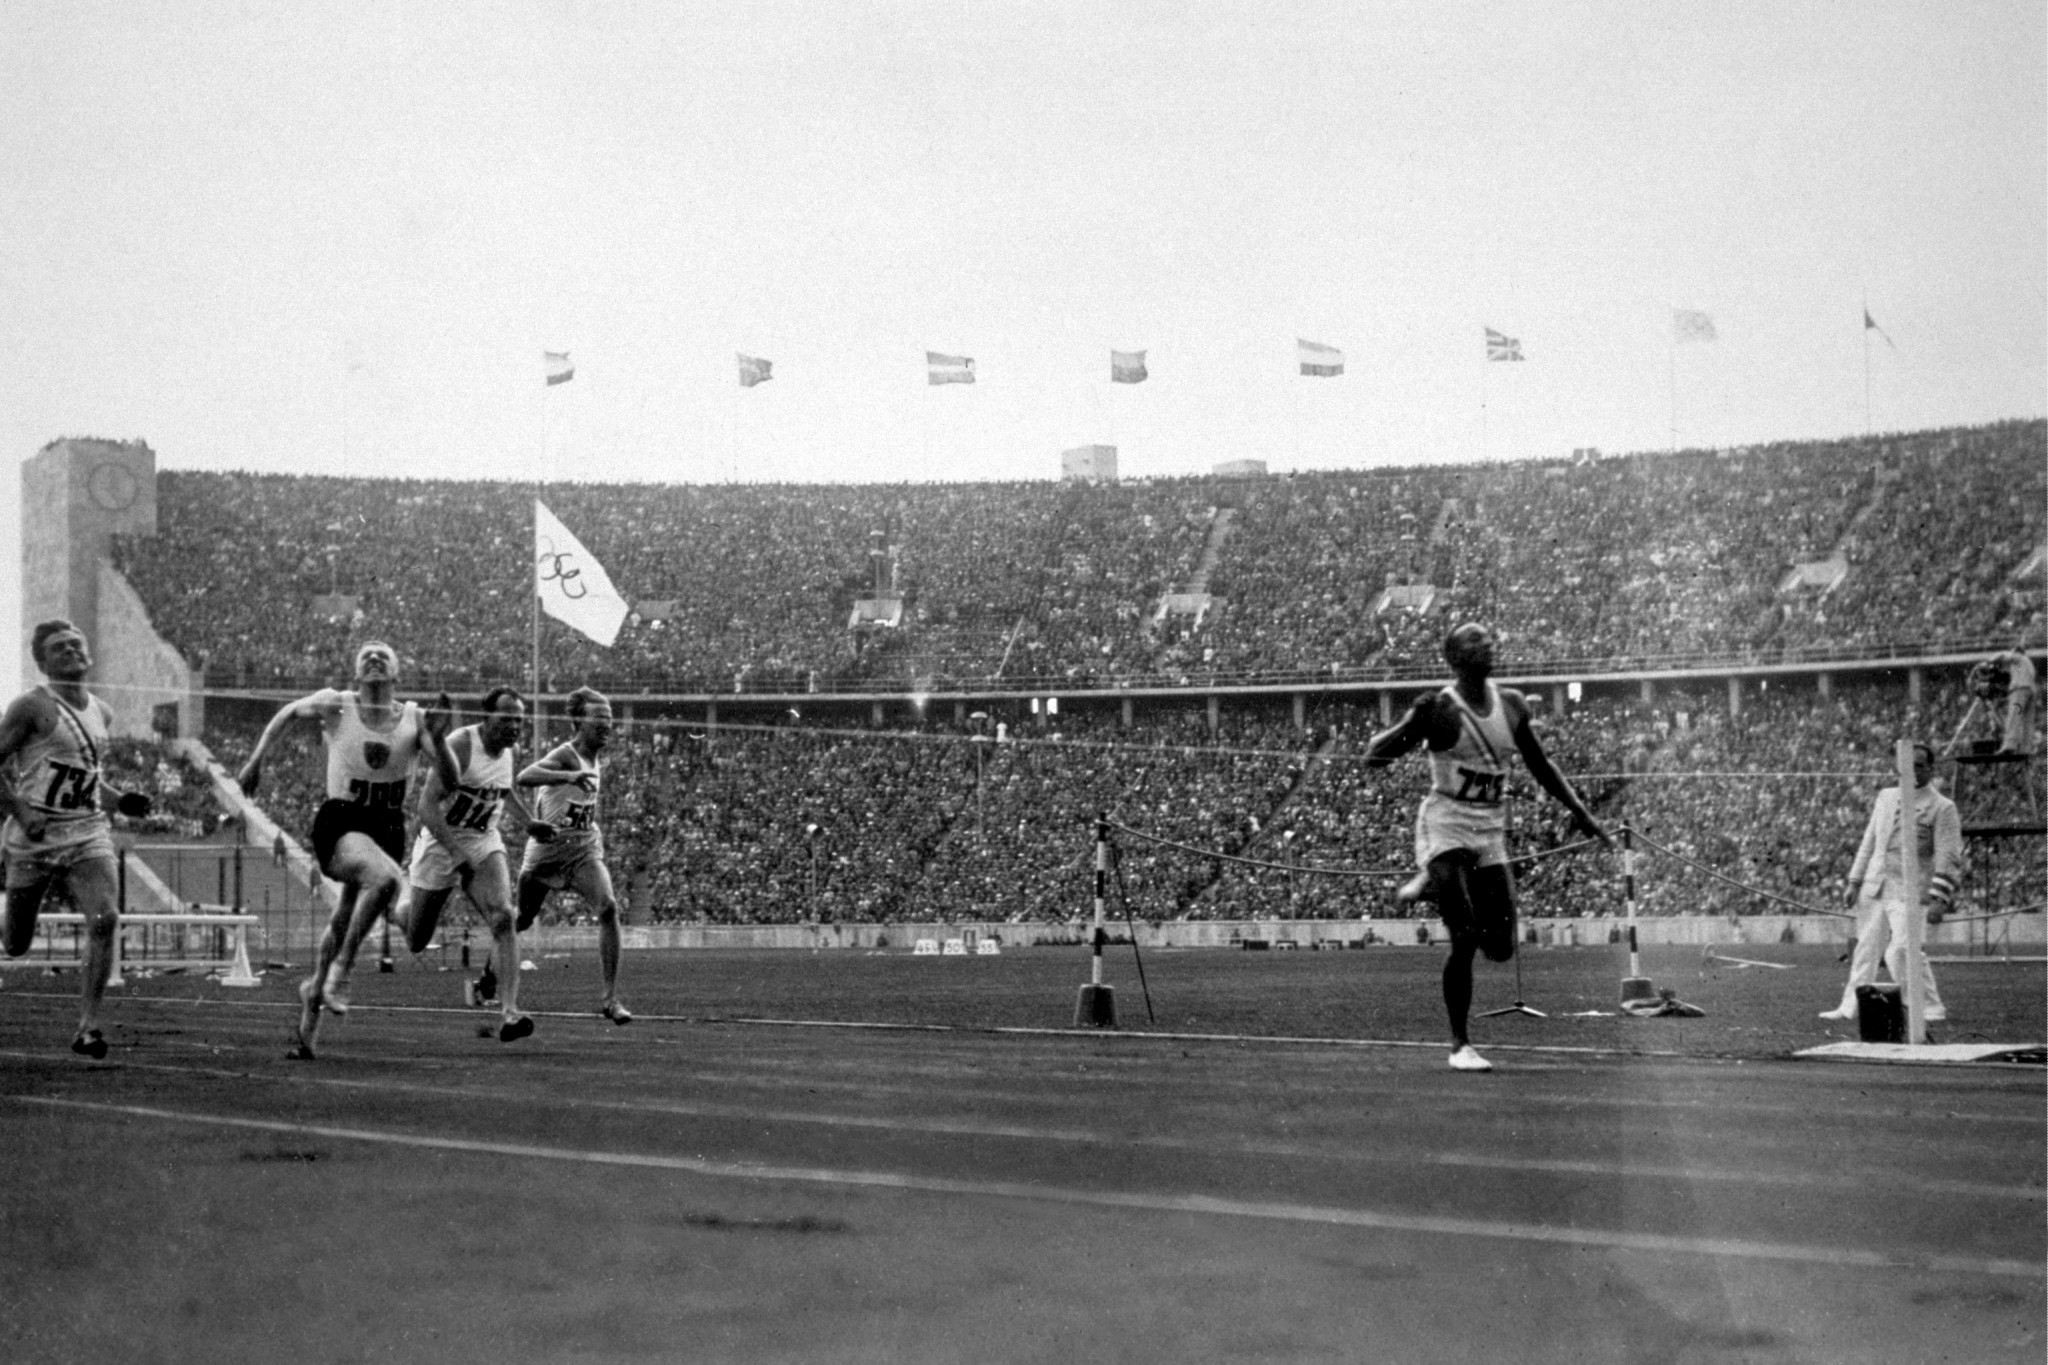 The IOC's response highlighted Jesse Owens' success at Berlin 1936 ©Getty Images